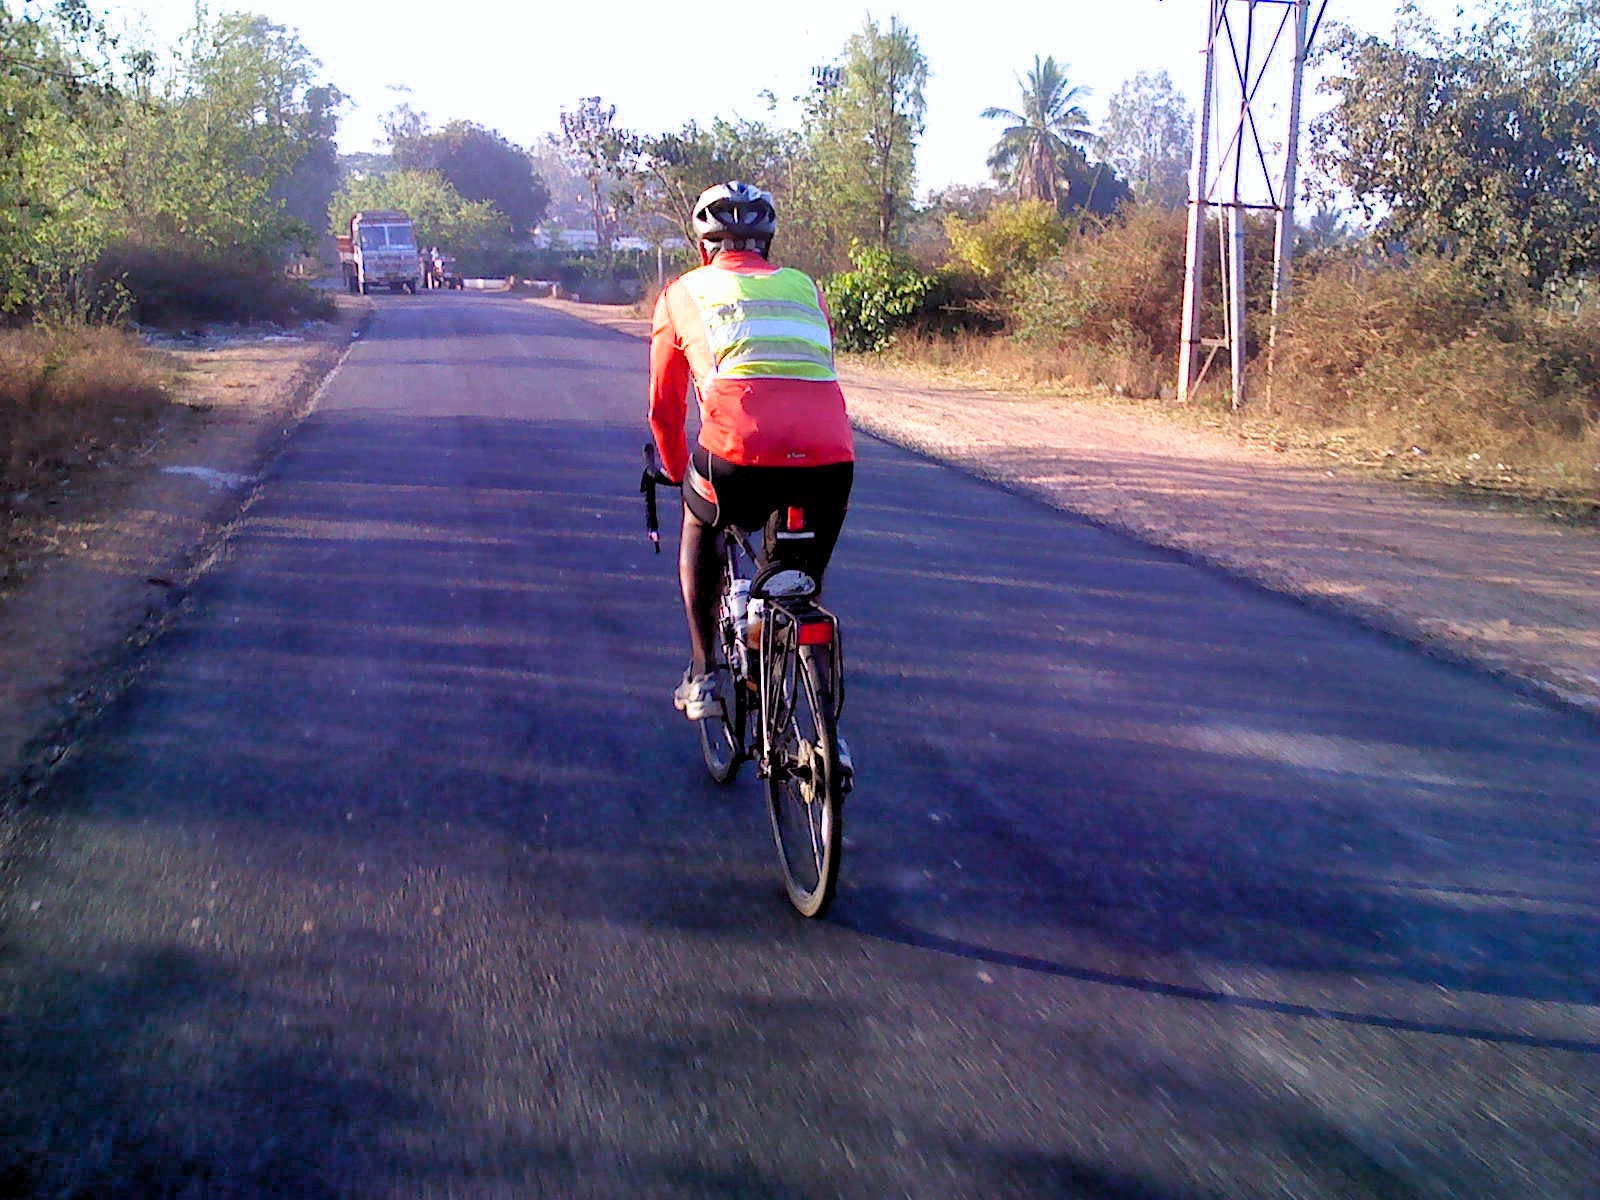 Photograph of a randonneur bicycling on Hoskote Malur road